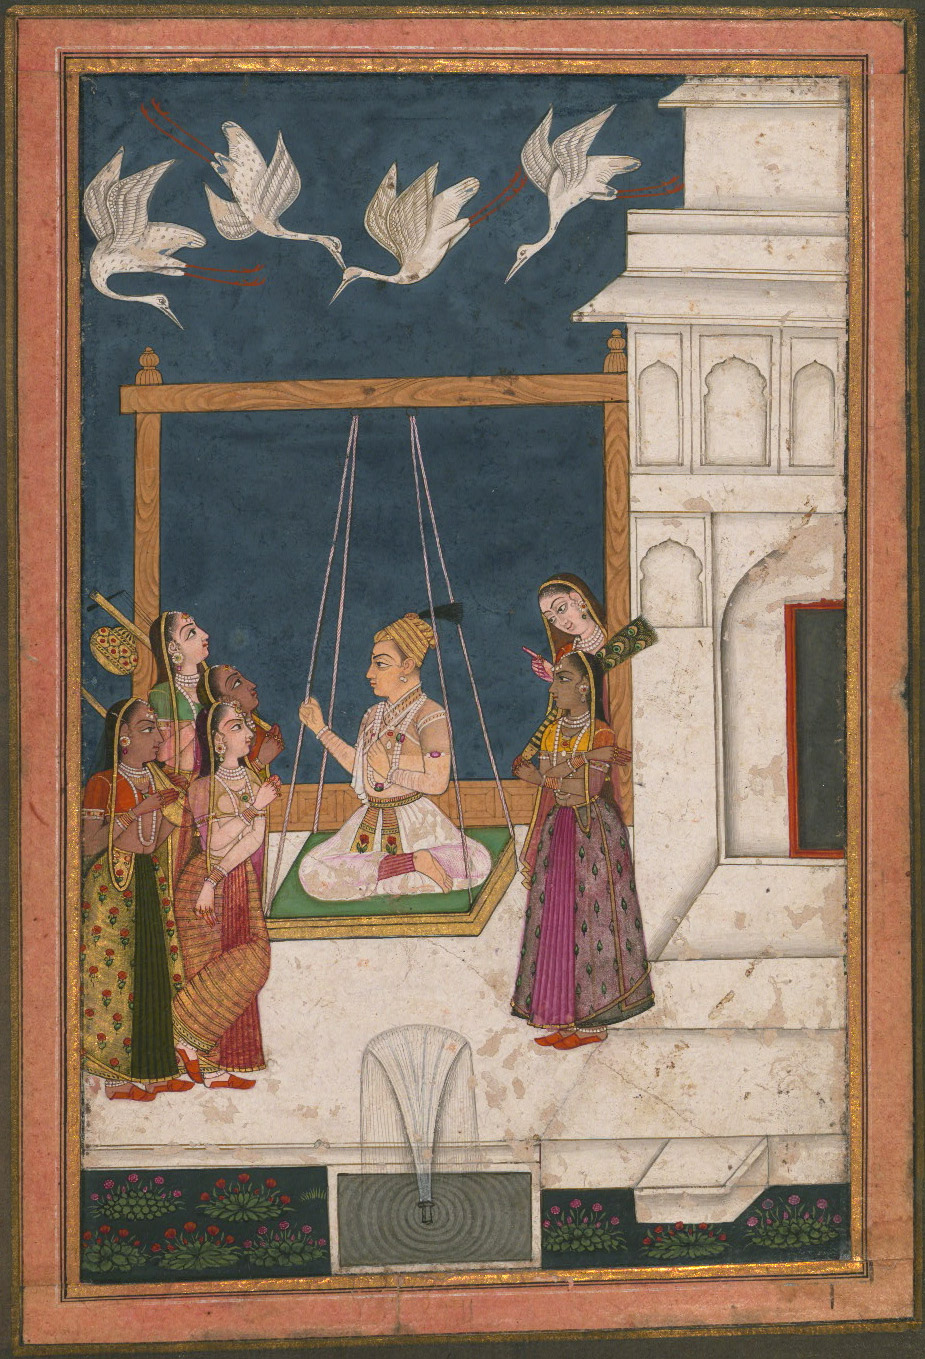 Hindola Raga - Miniature Painting, Deccan School, Ragamala Series, 19th Century